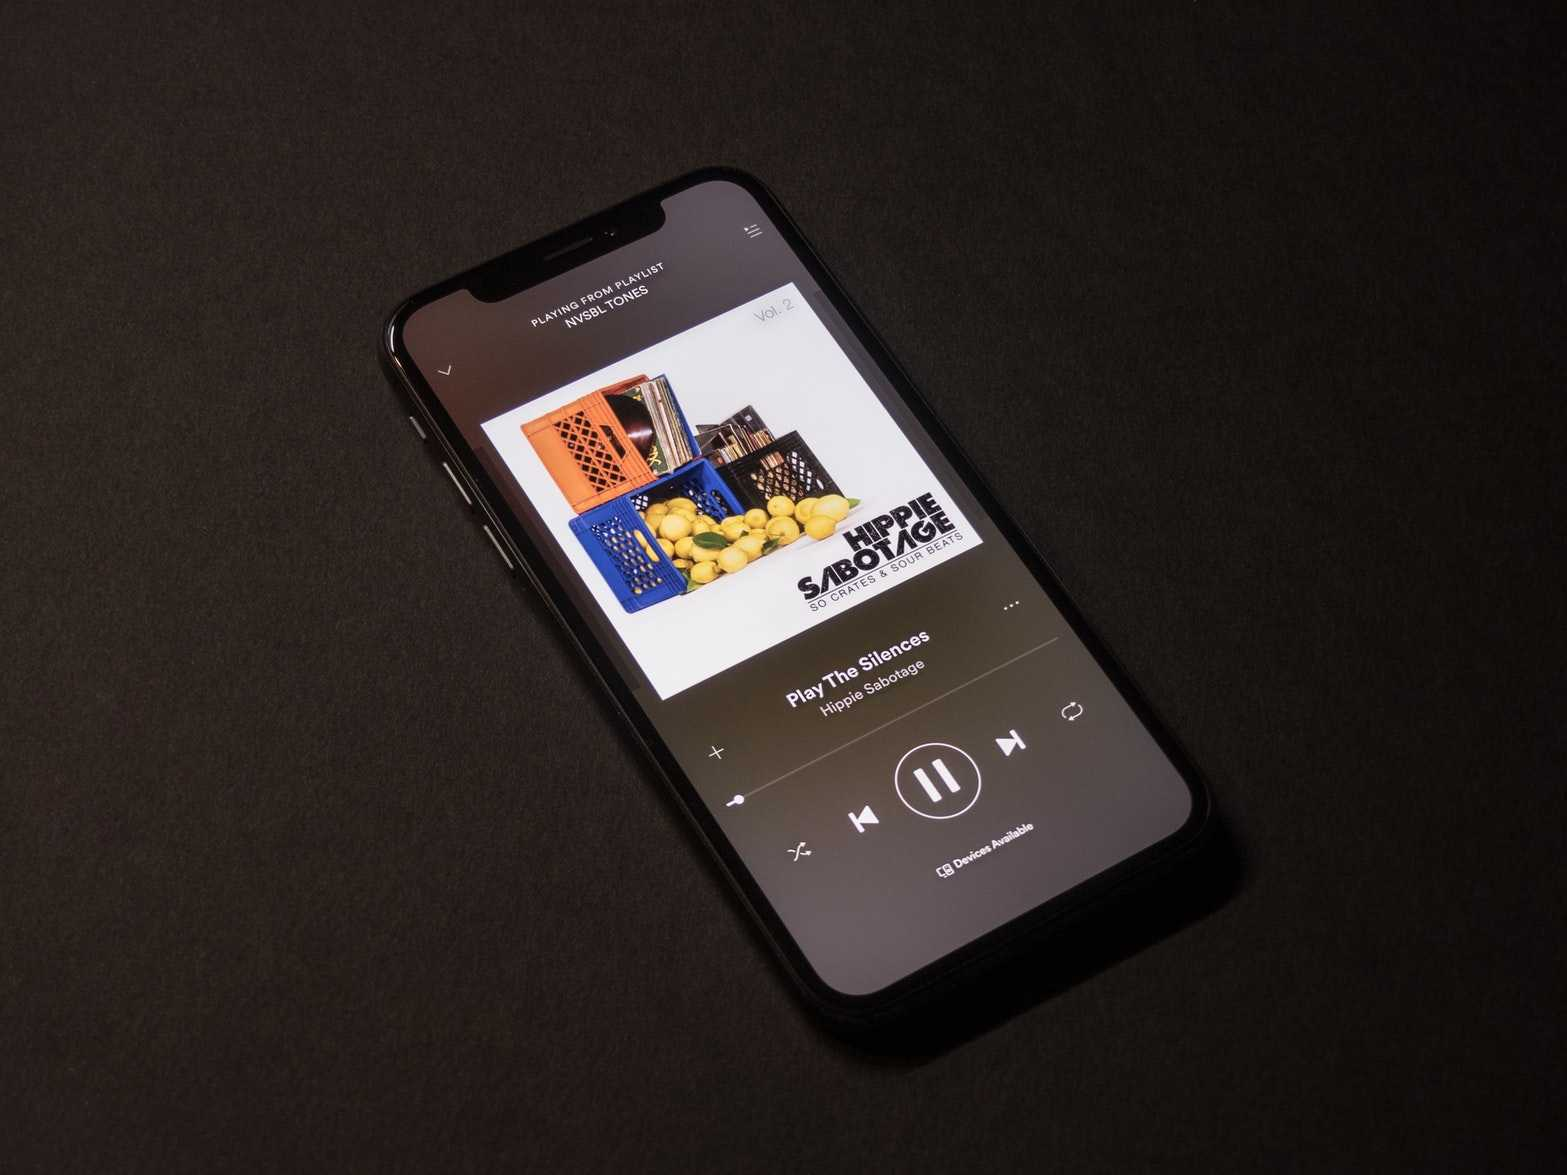 How to use Spotify in India without 14 Days Restriction